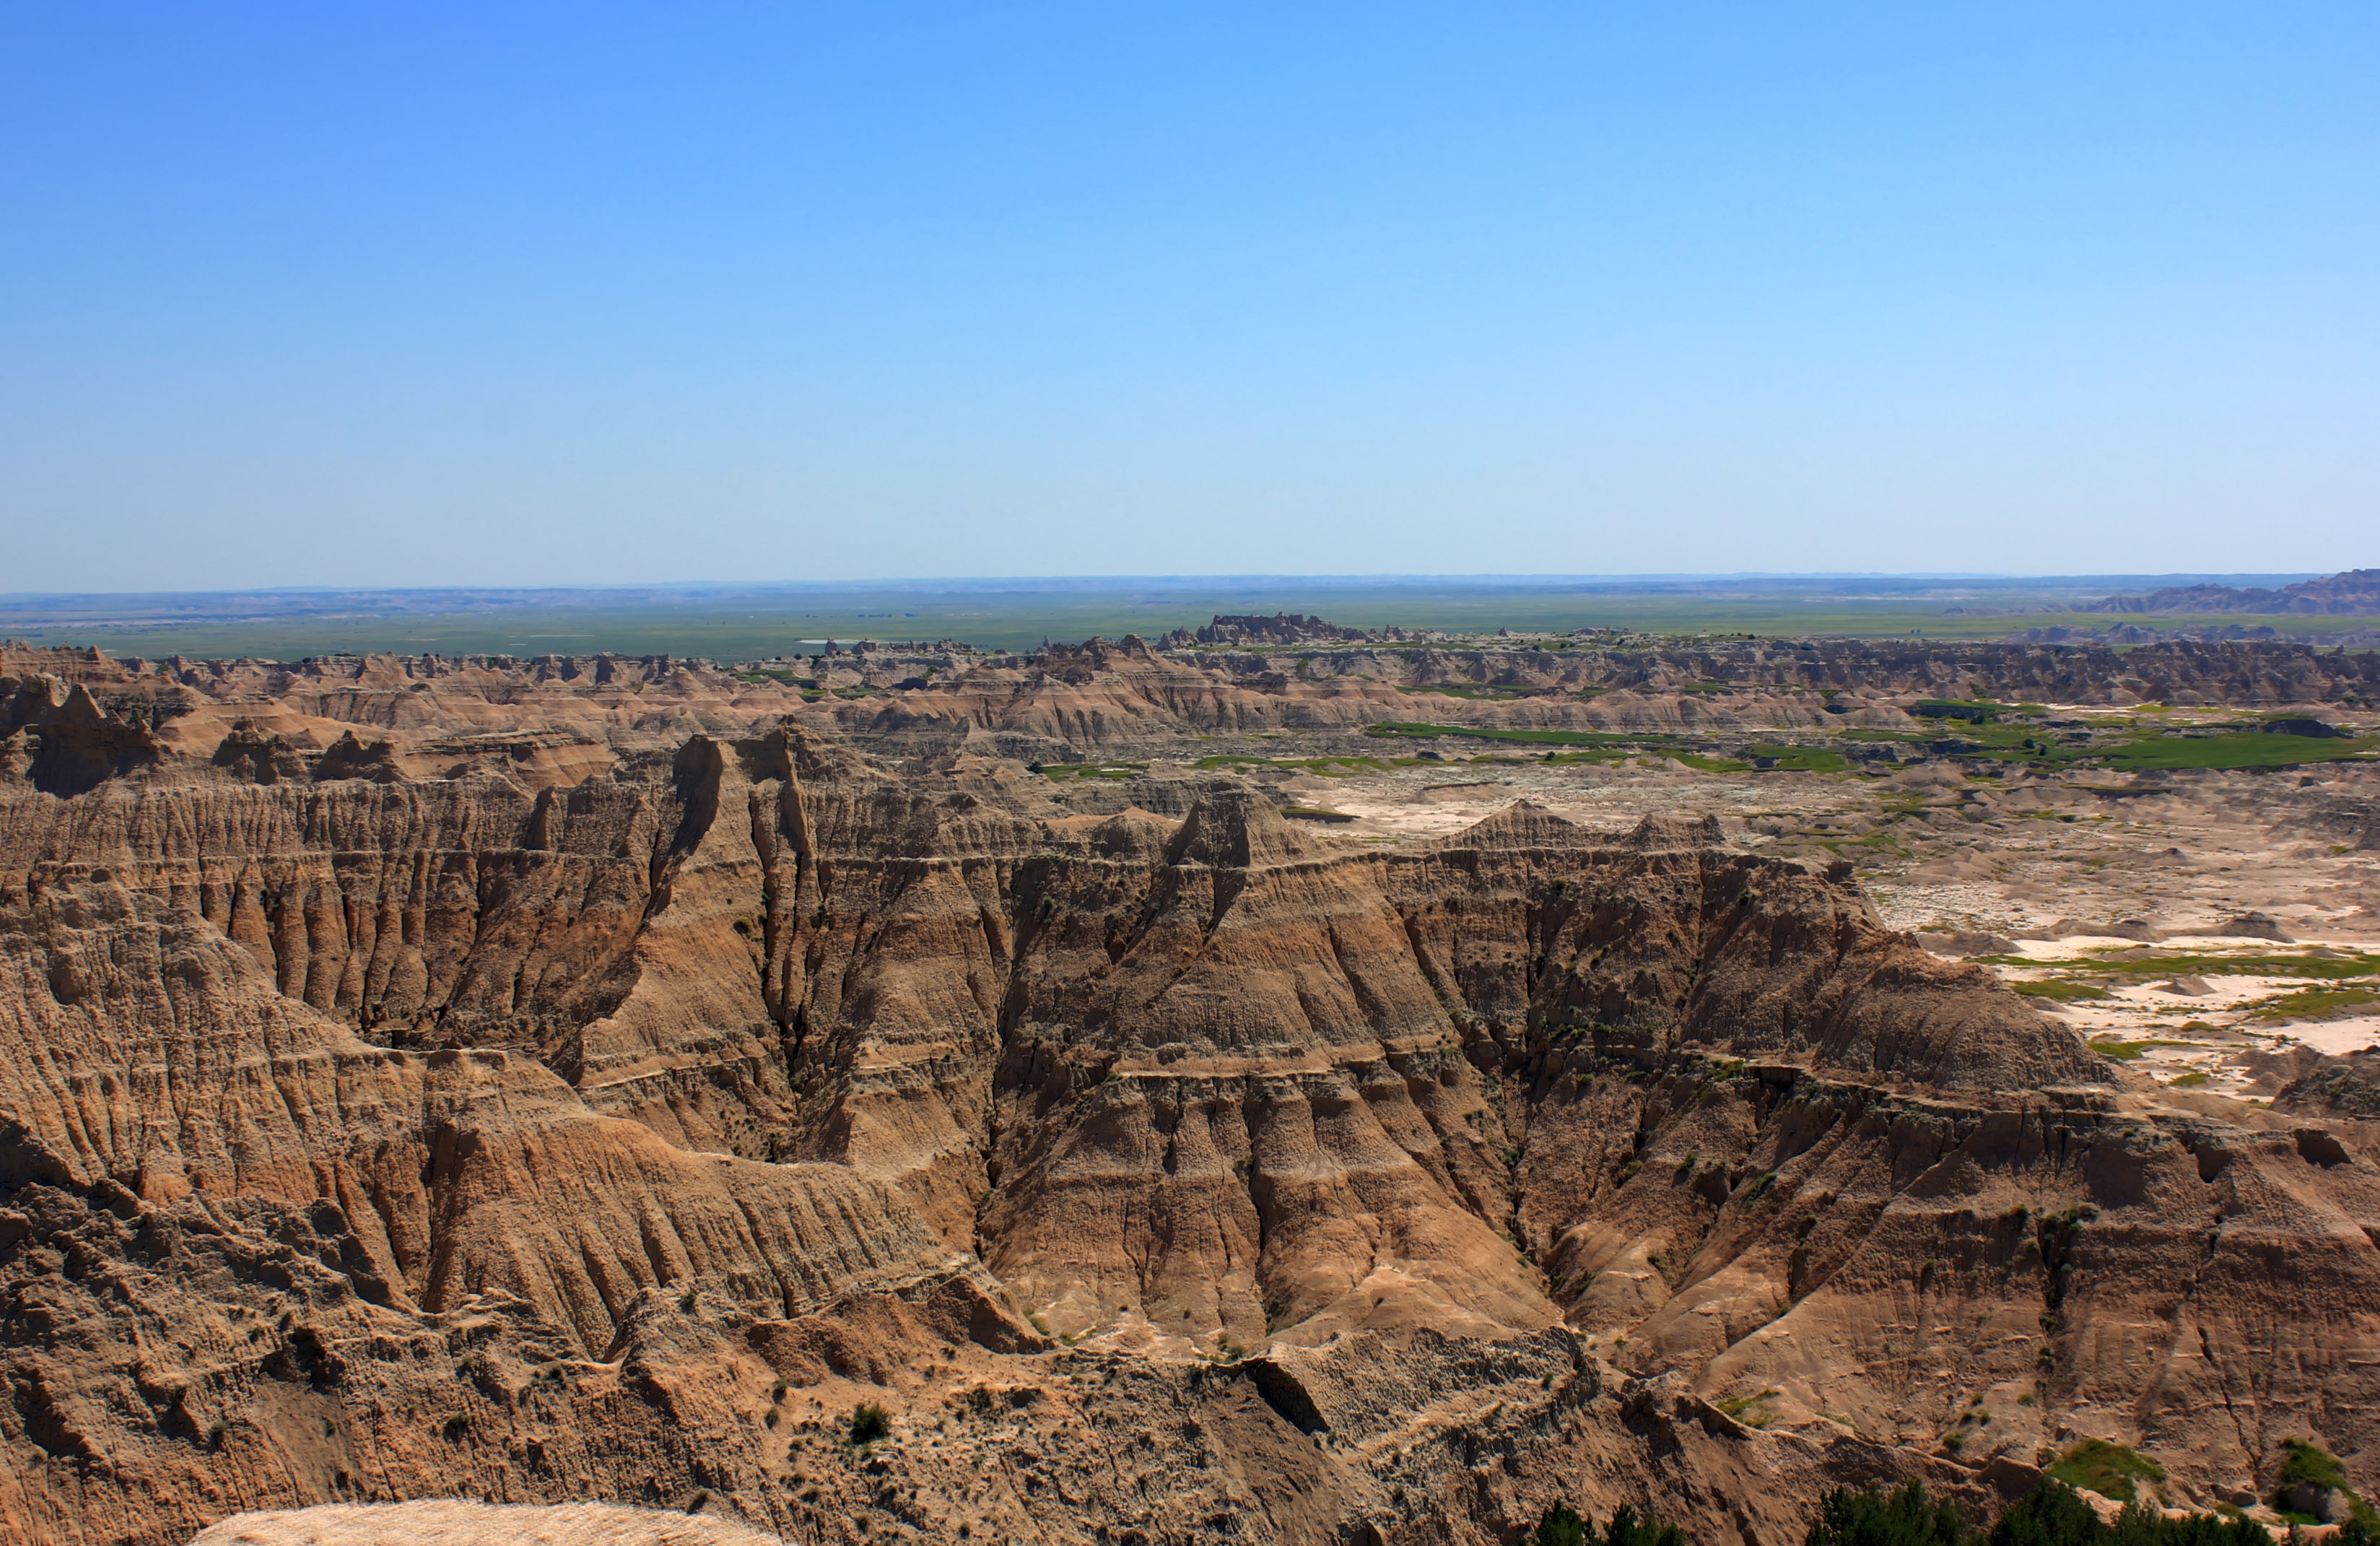 Major Hills and Pinnacles at Badlands National Park, South Dakota.